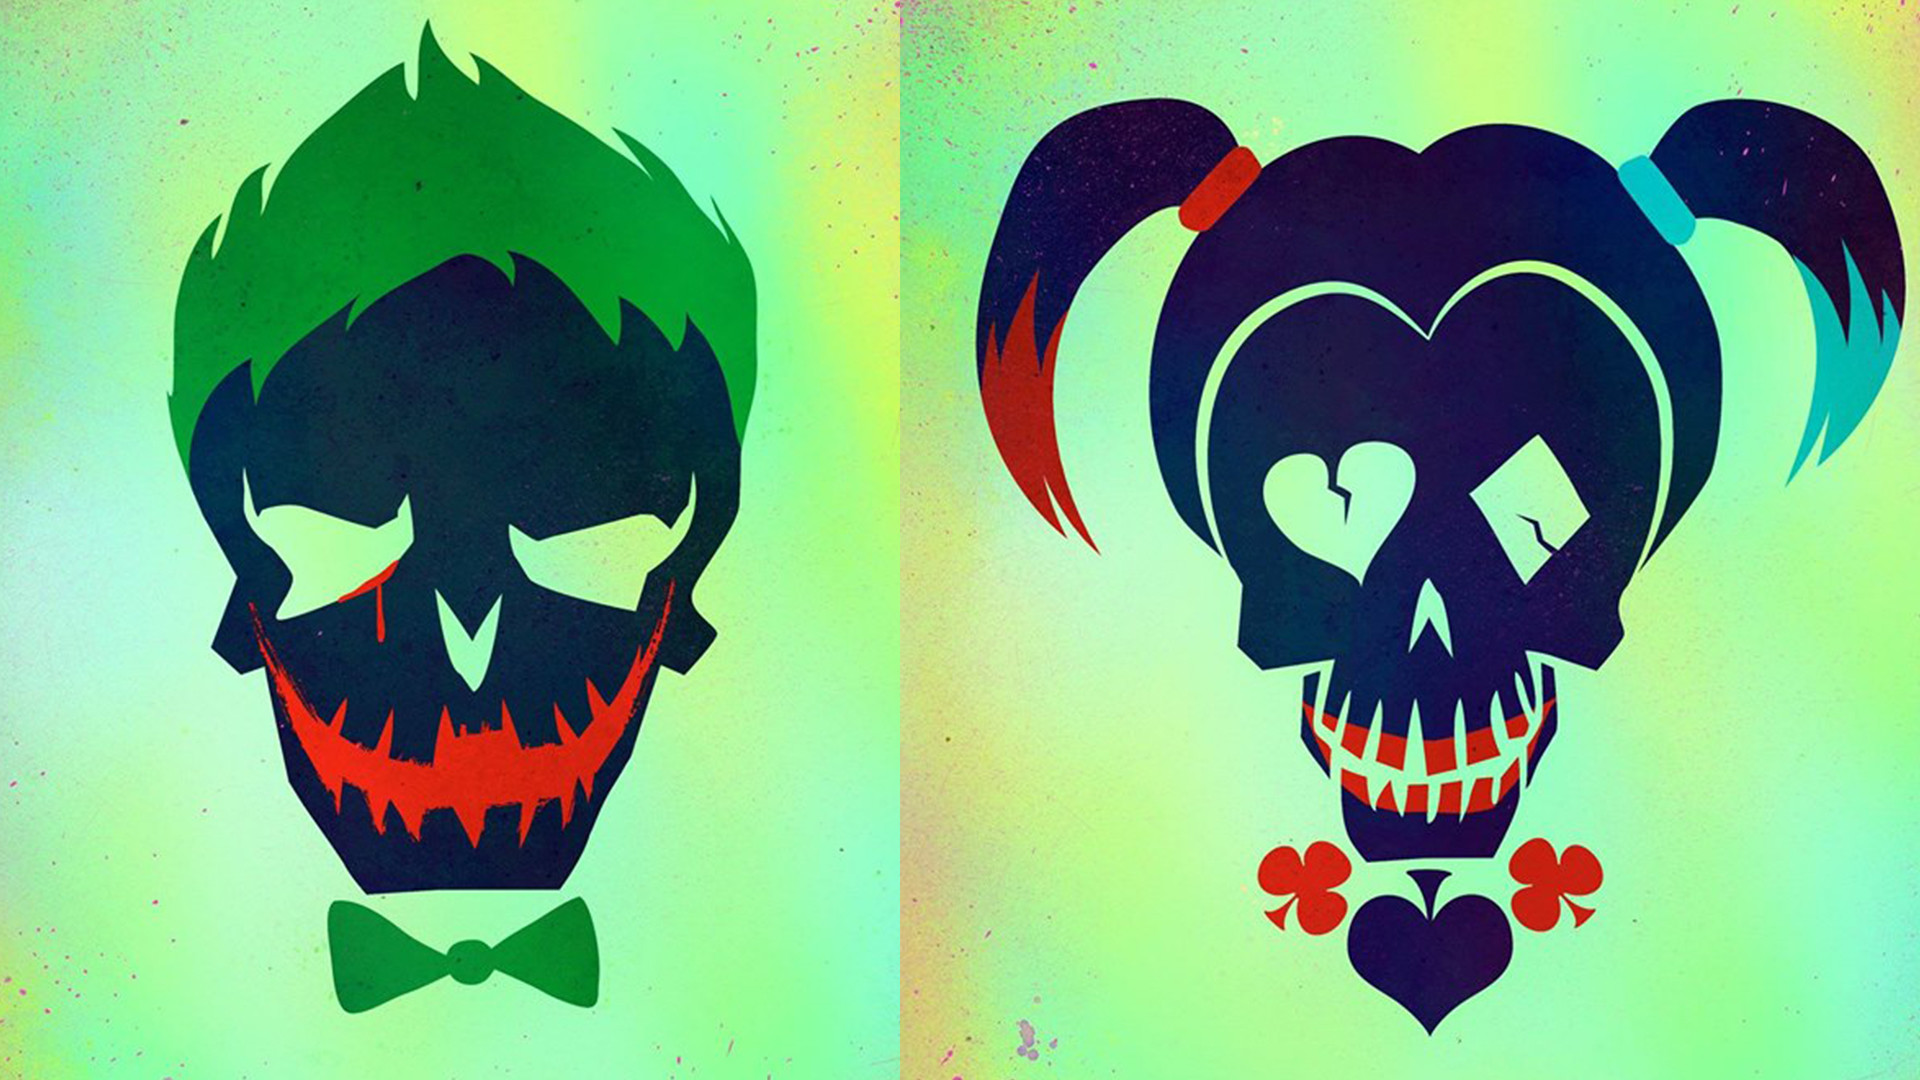 Joker and harley quinn wallpaper 71 images 1920x1080 download joker and harley quinn hd wallpapers widescreens from our given resolutions for free voltagebd Choice Image